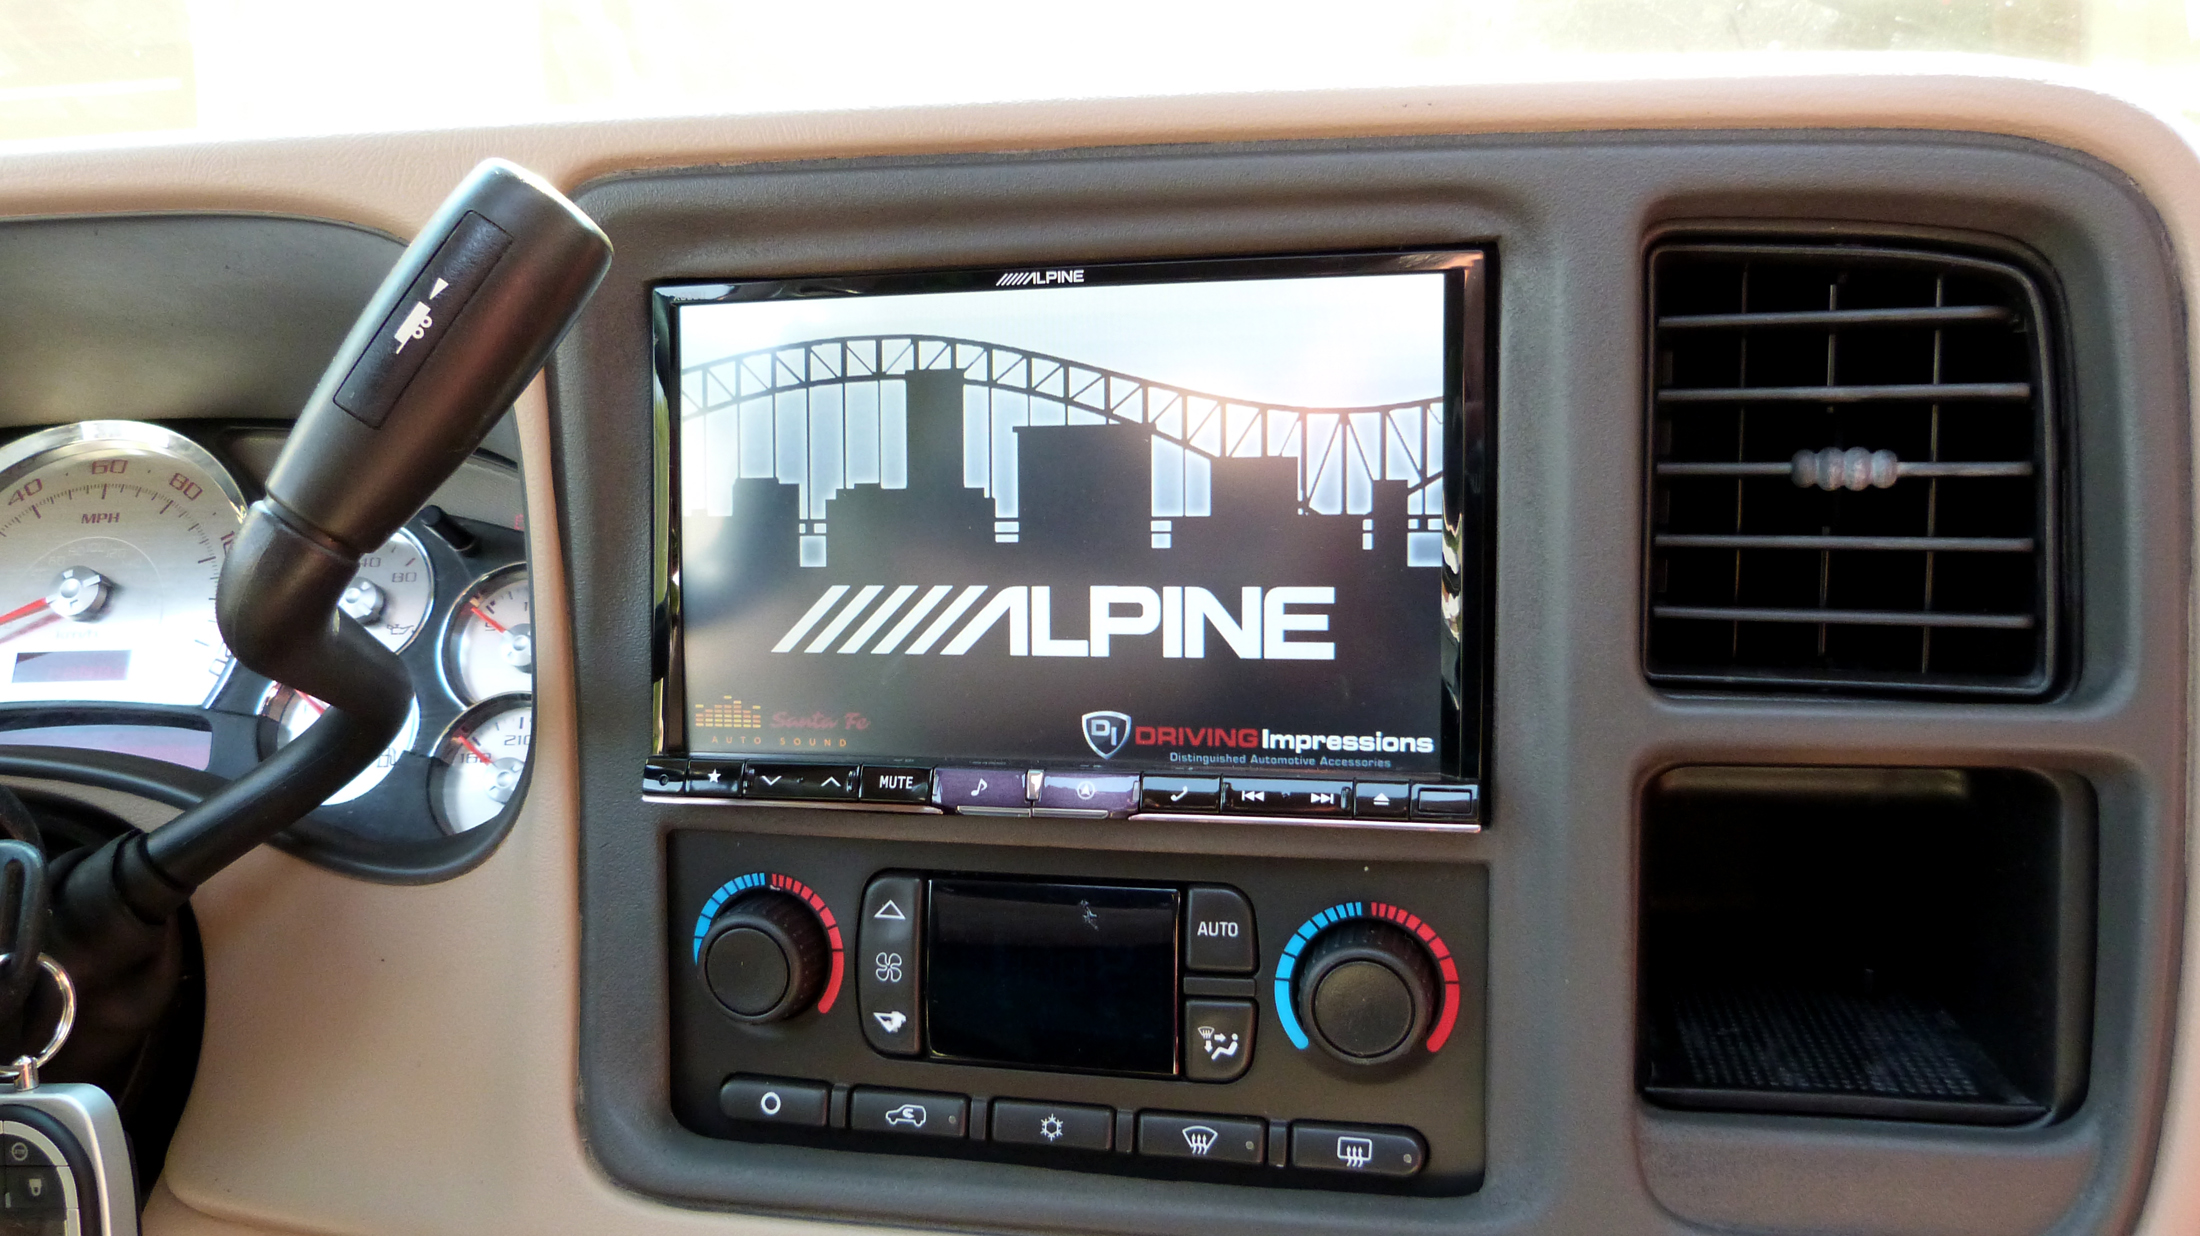 Year 2003 Chevrolet Tahoe Z71 Feature Image Alpine Ine 008u